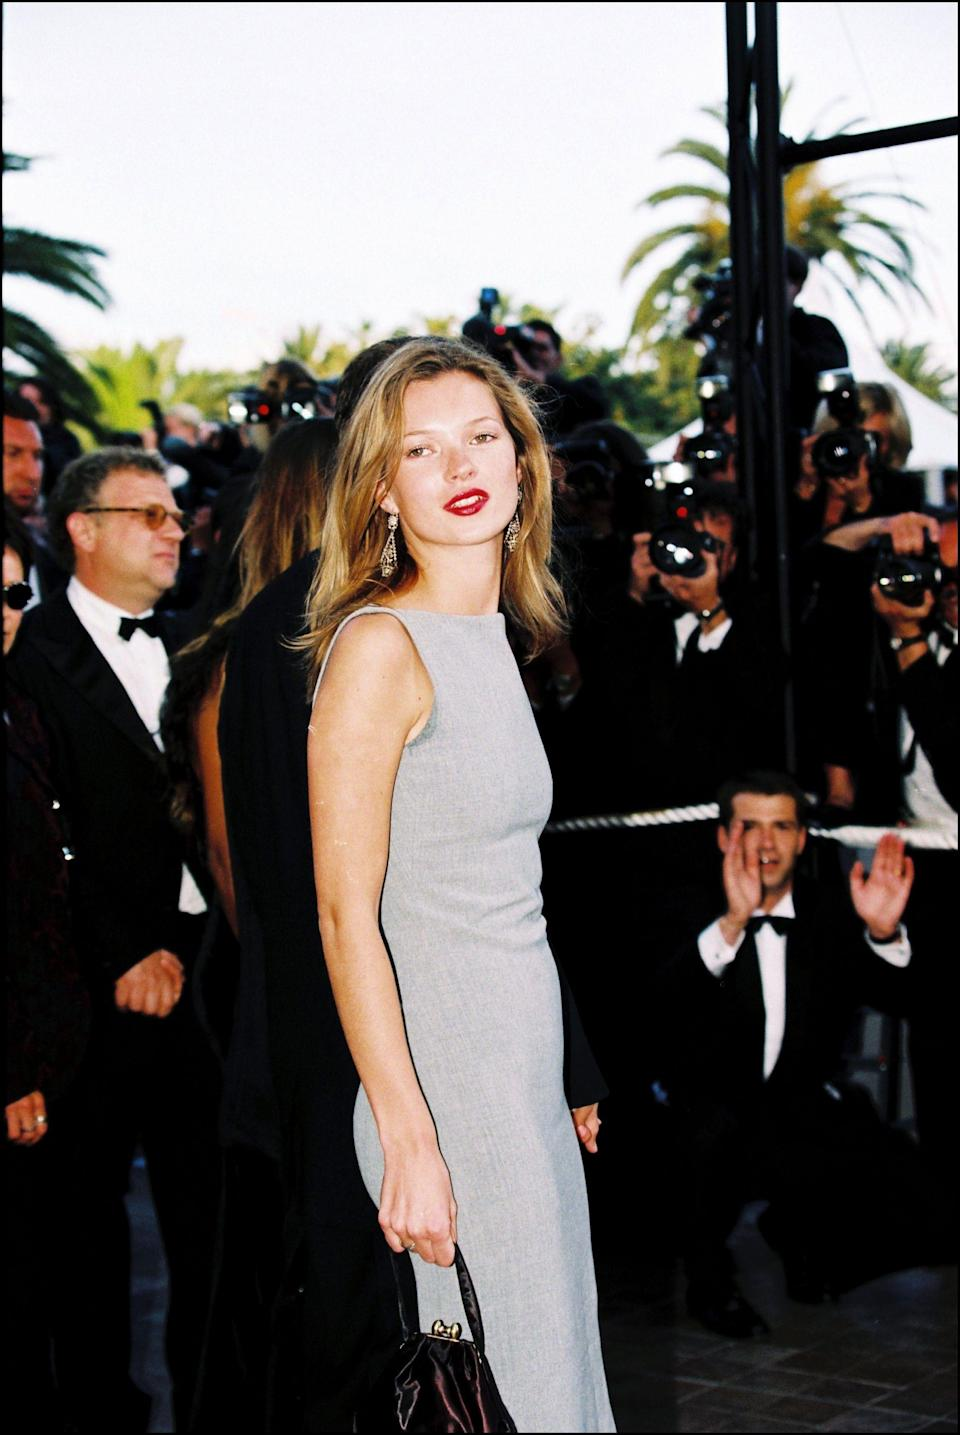 <p>Business chic is the mode of dress for Kate at the 1997 Cannes Film Festival</p>